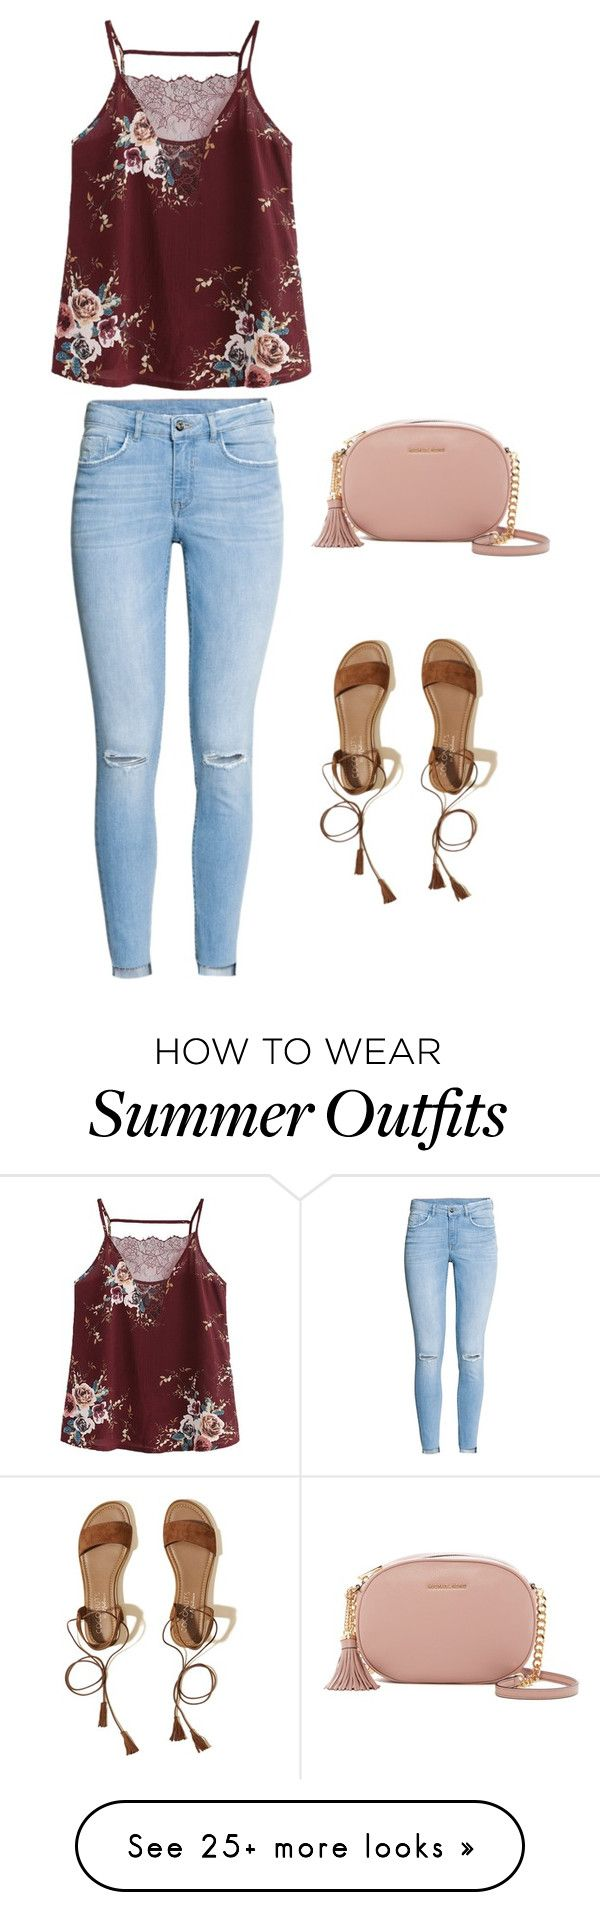 """Outfit"" by ashli-iii on Polyvore featuring H&M, Hollister Co. and MICHAEL Michael Kors"